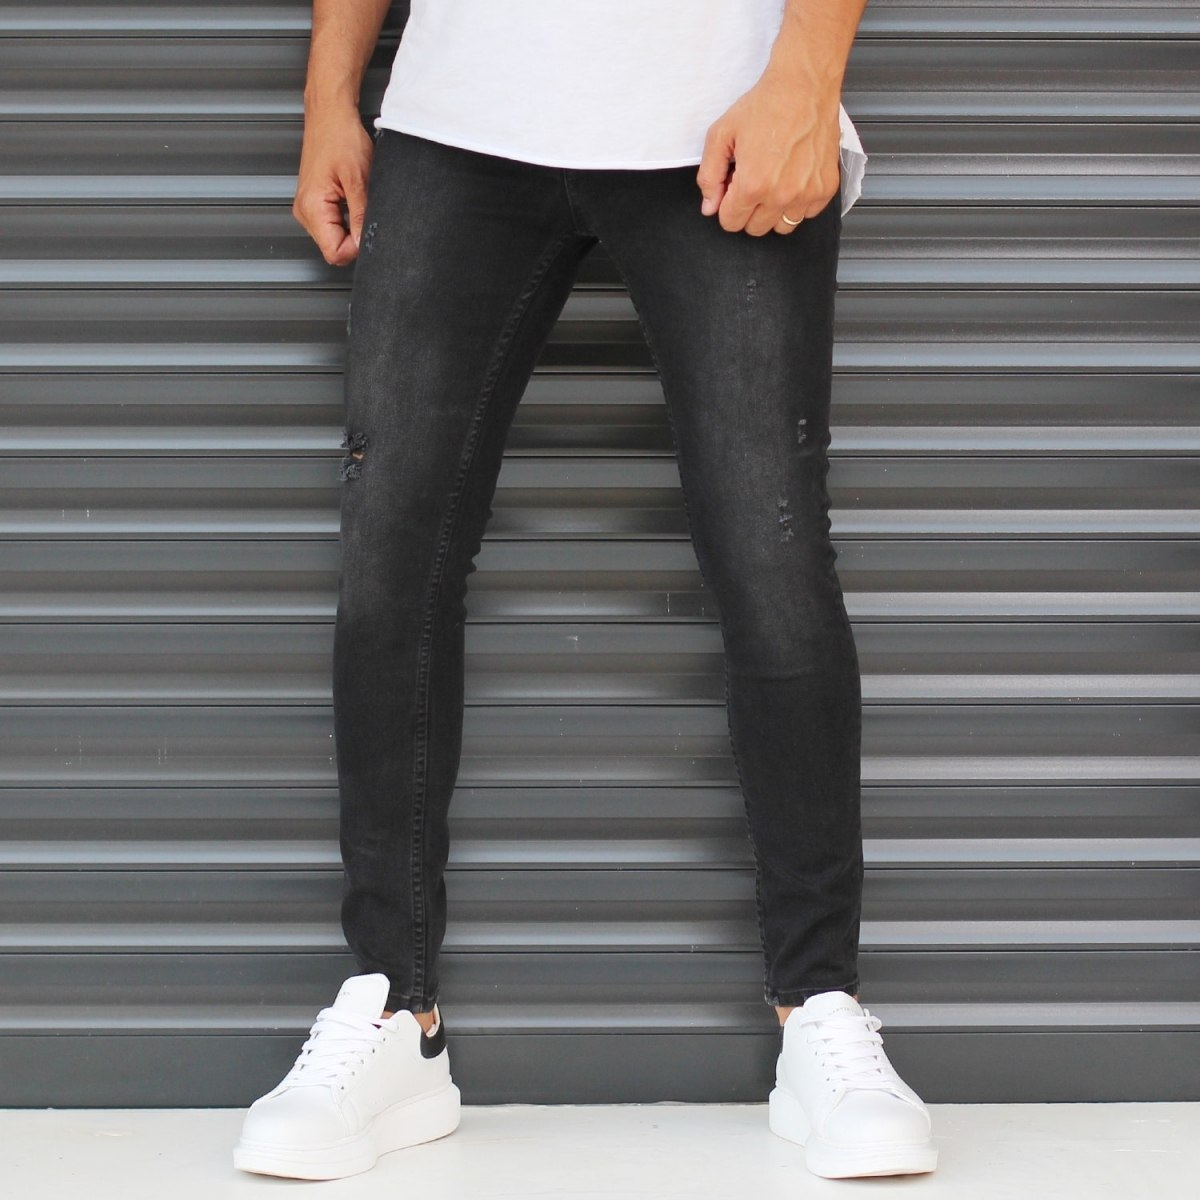 Men's Narrov Leg Jeans With...